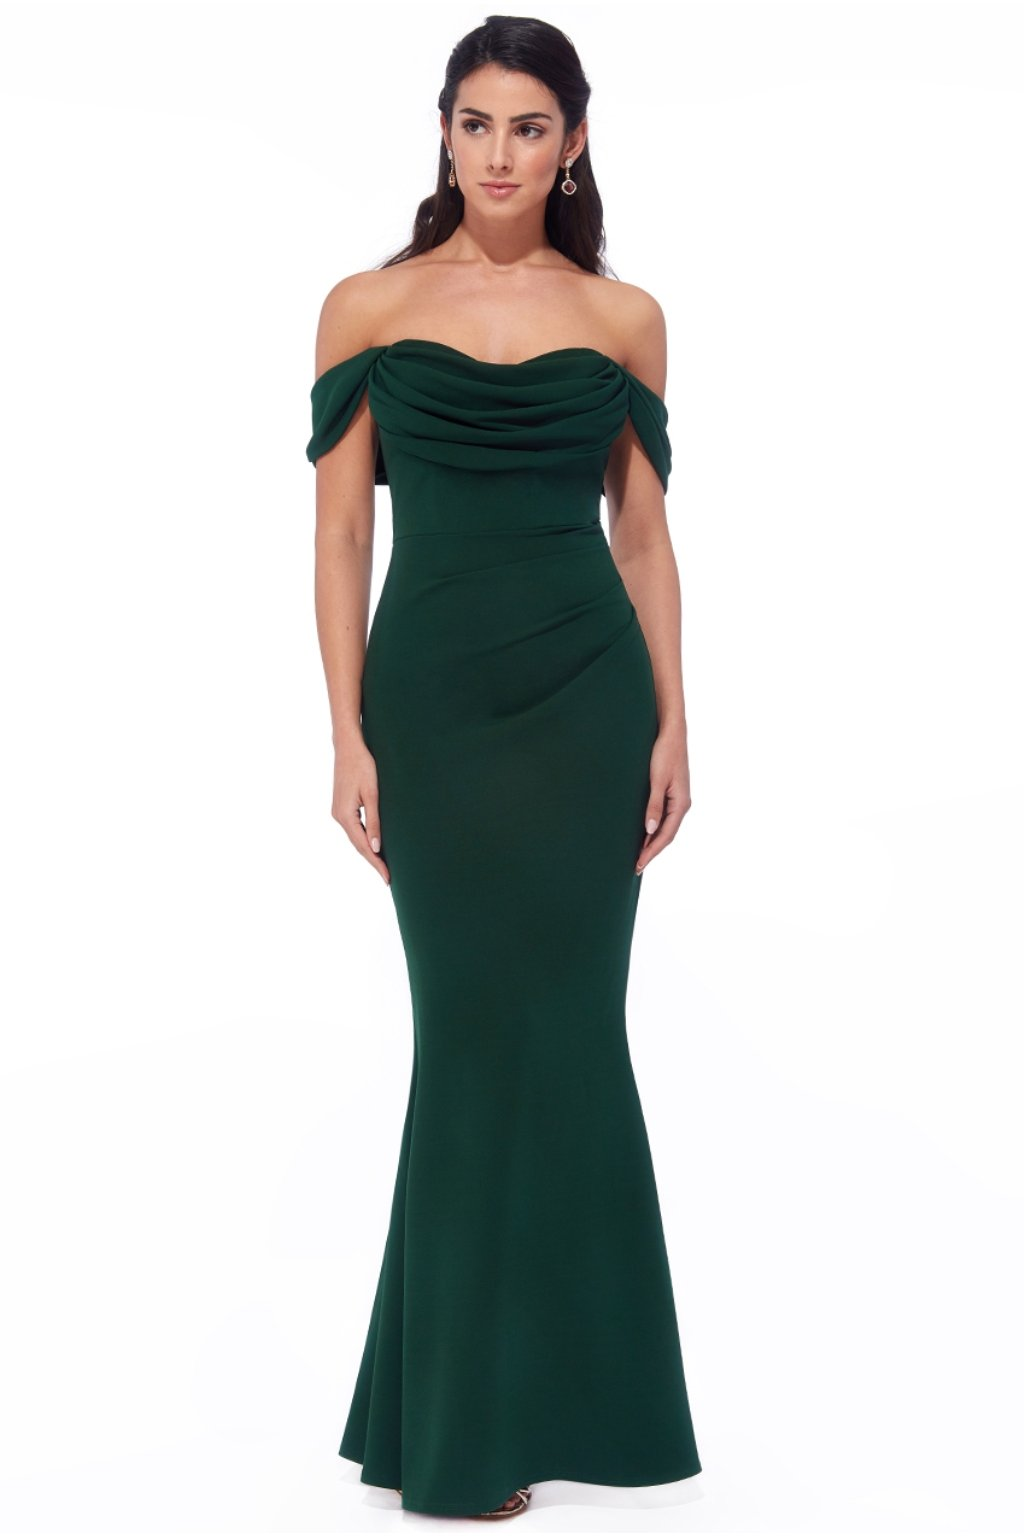 Green bodycon off-the-shoulders formal dress